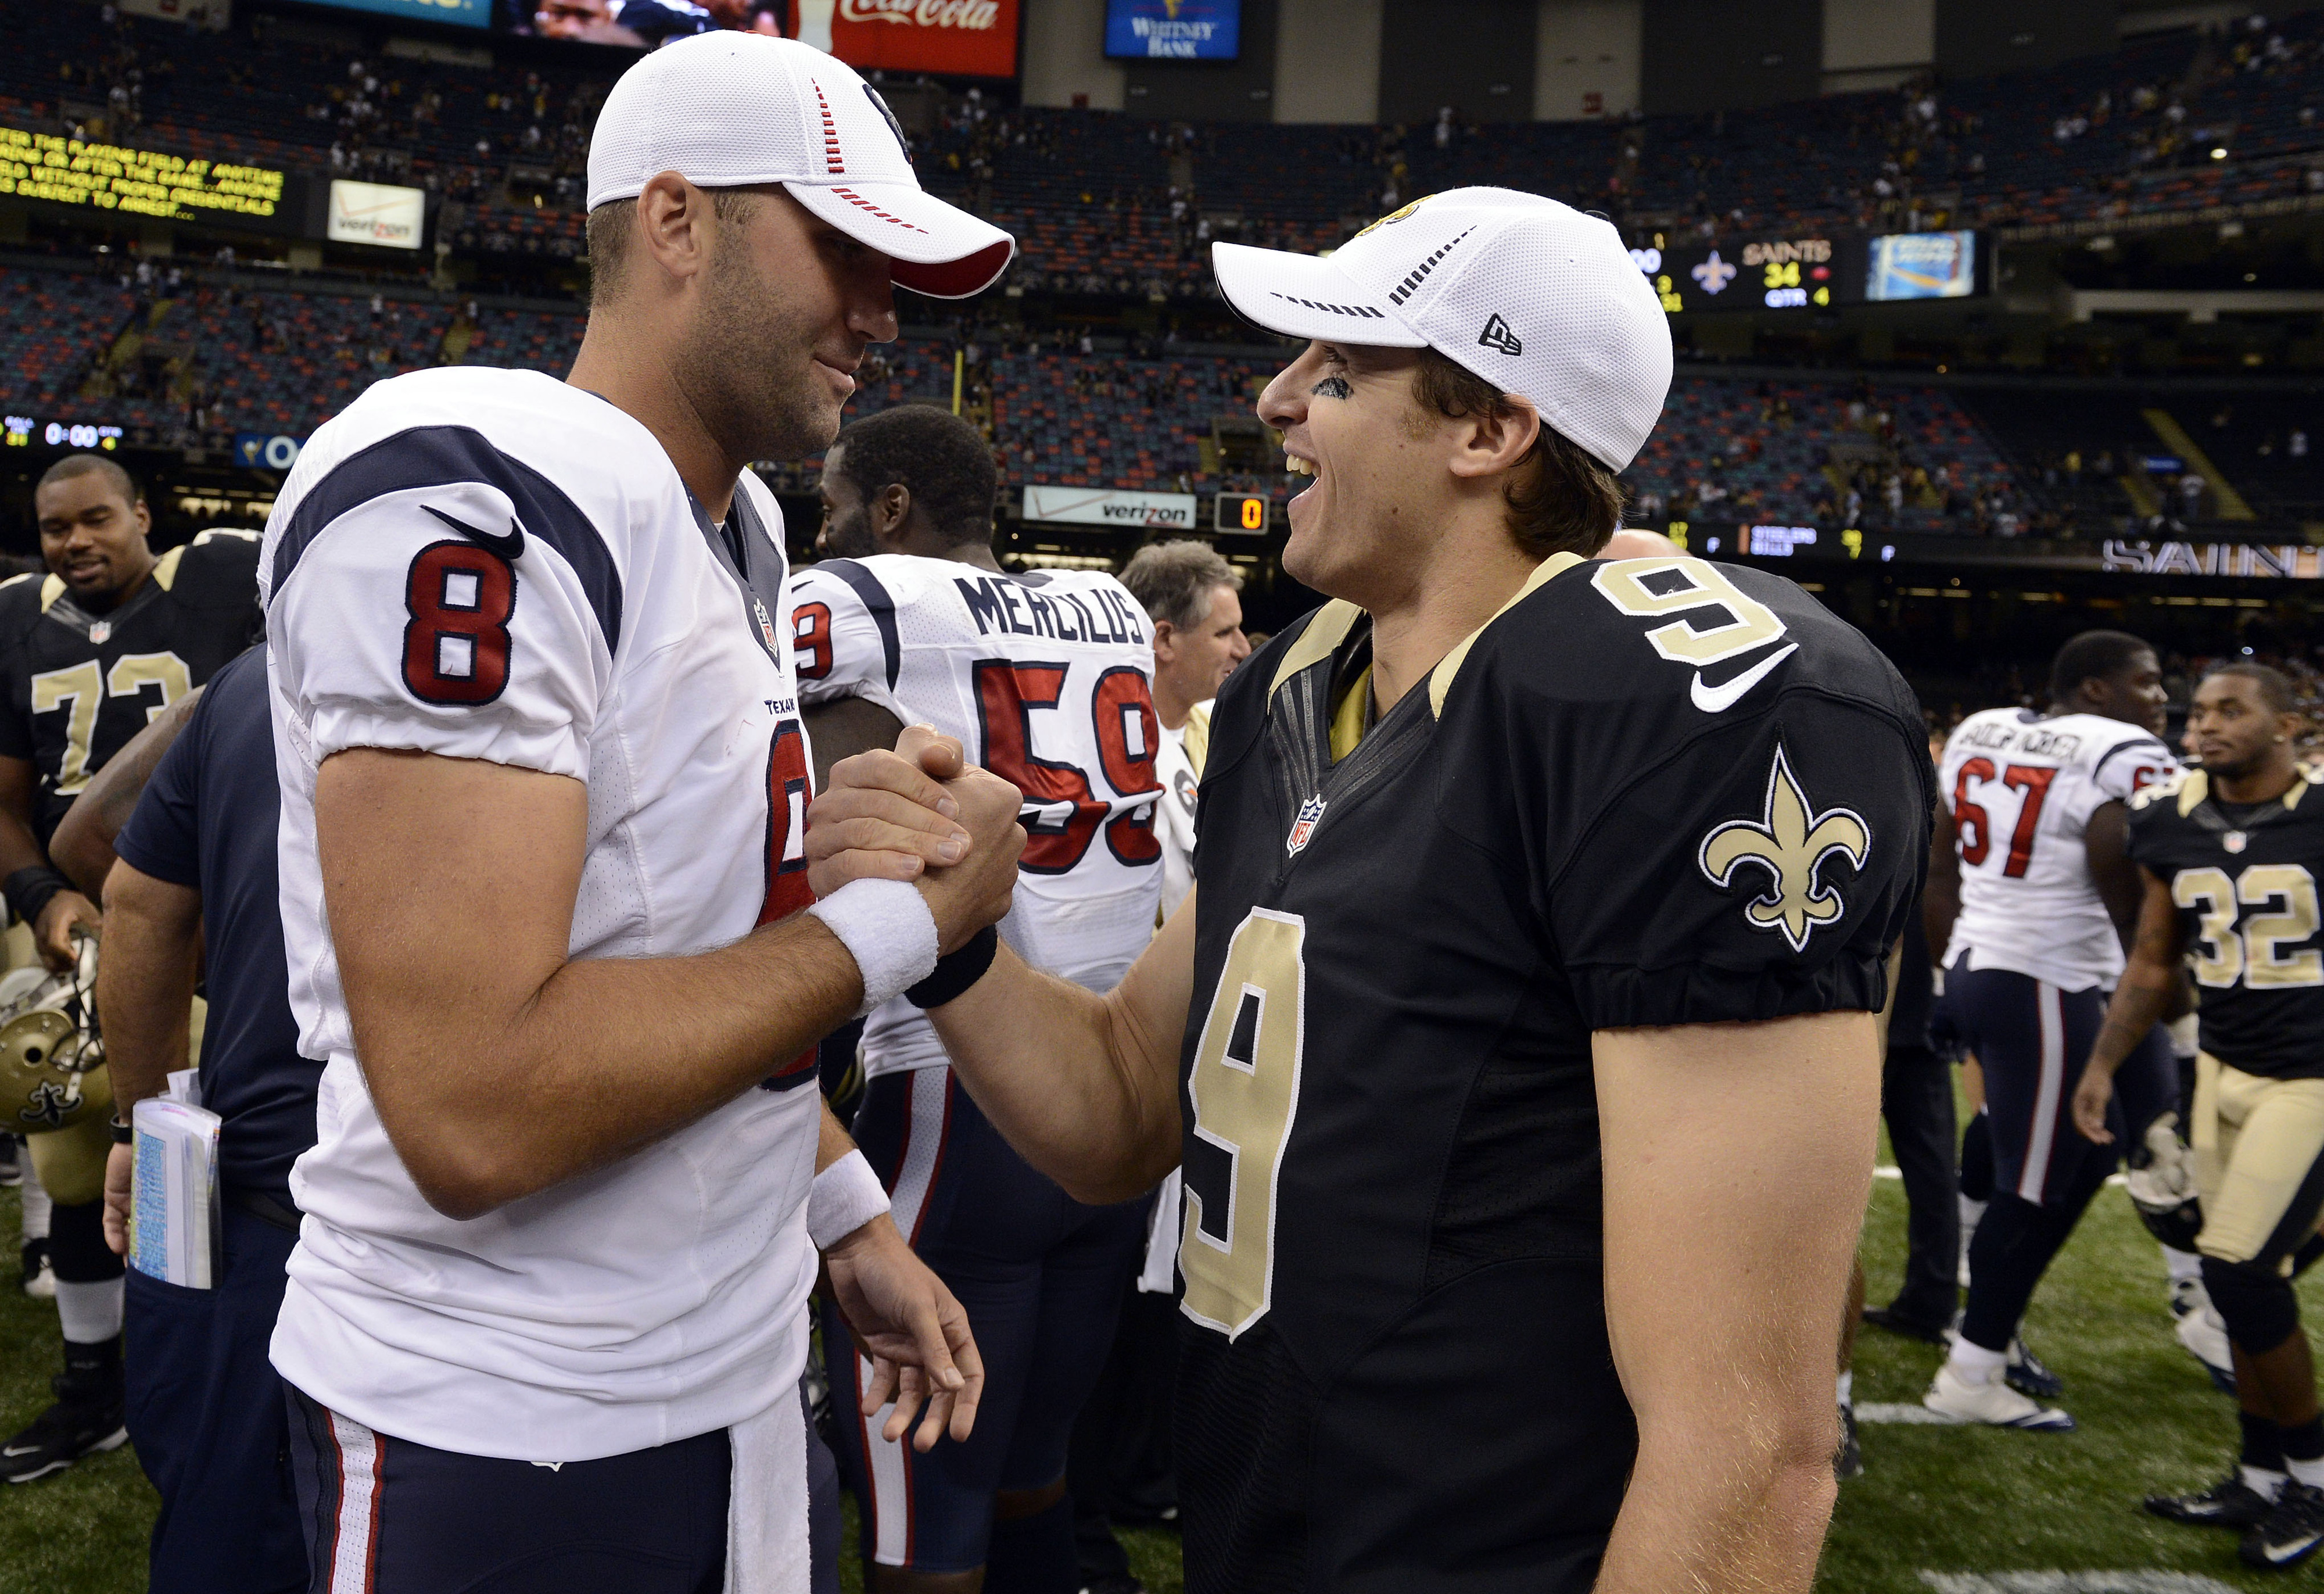 A future Hall of Famer and Drew Brees share a post game laugh.